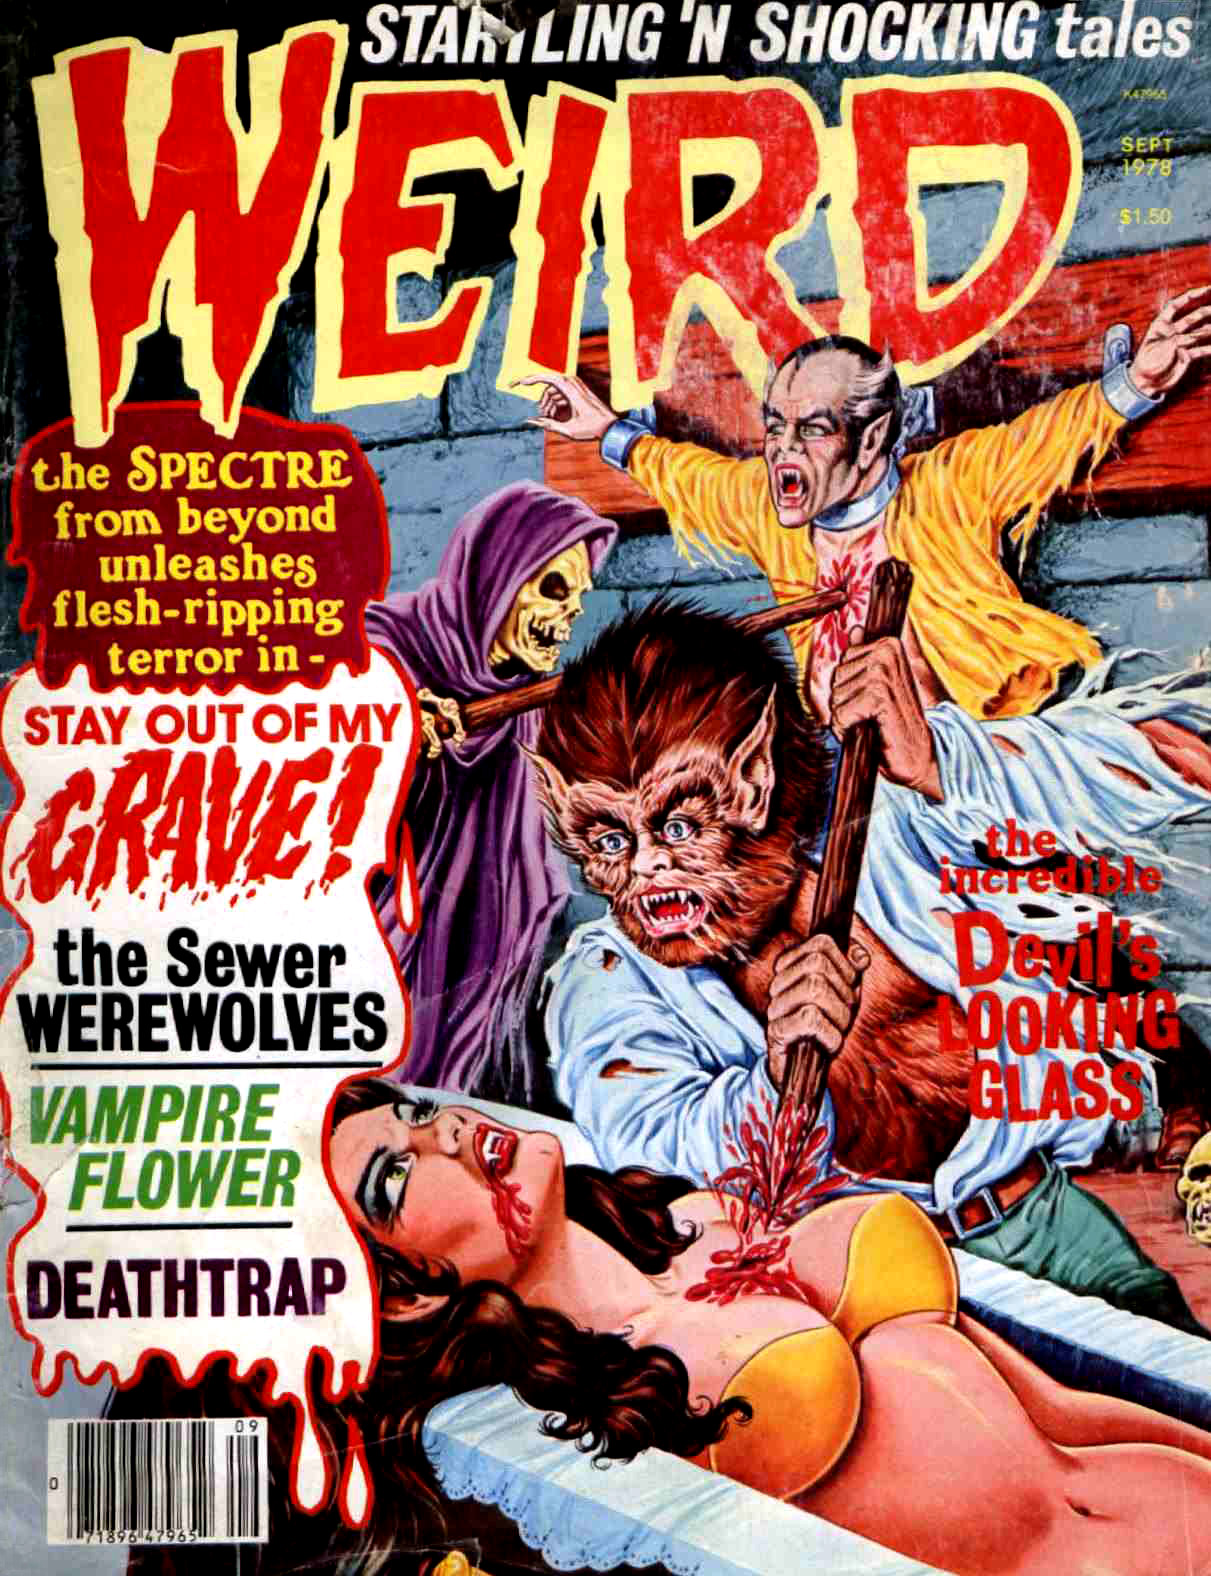 Weird Vol. 11 #3 (Eerie Publications, 1978)